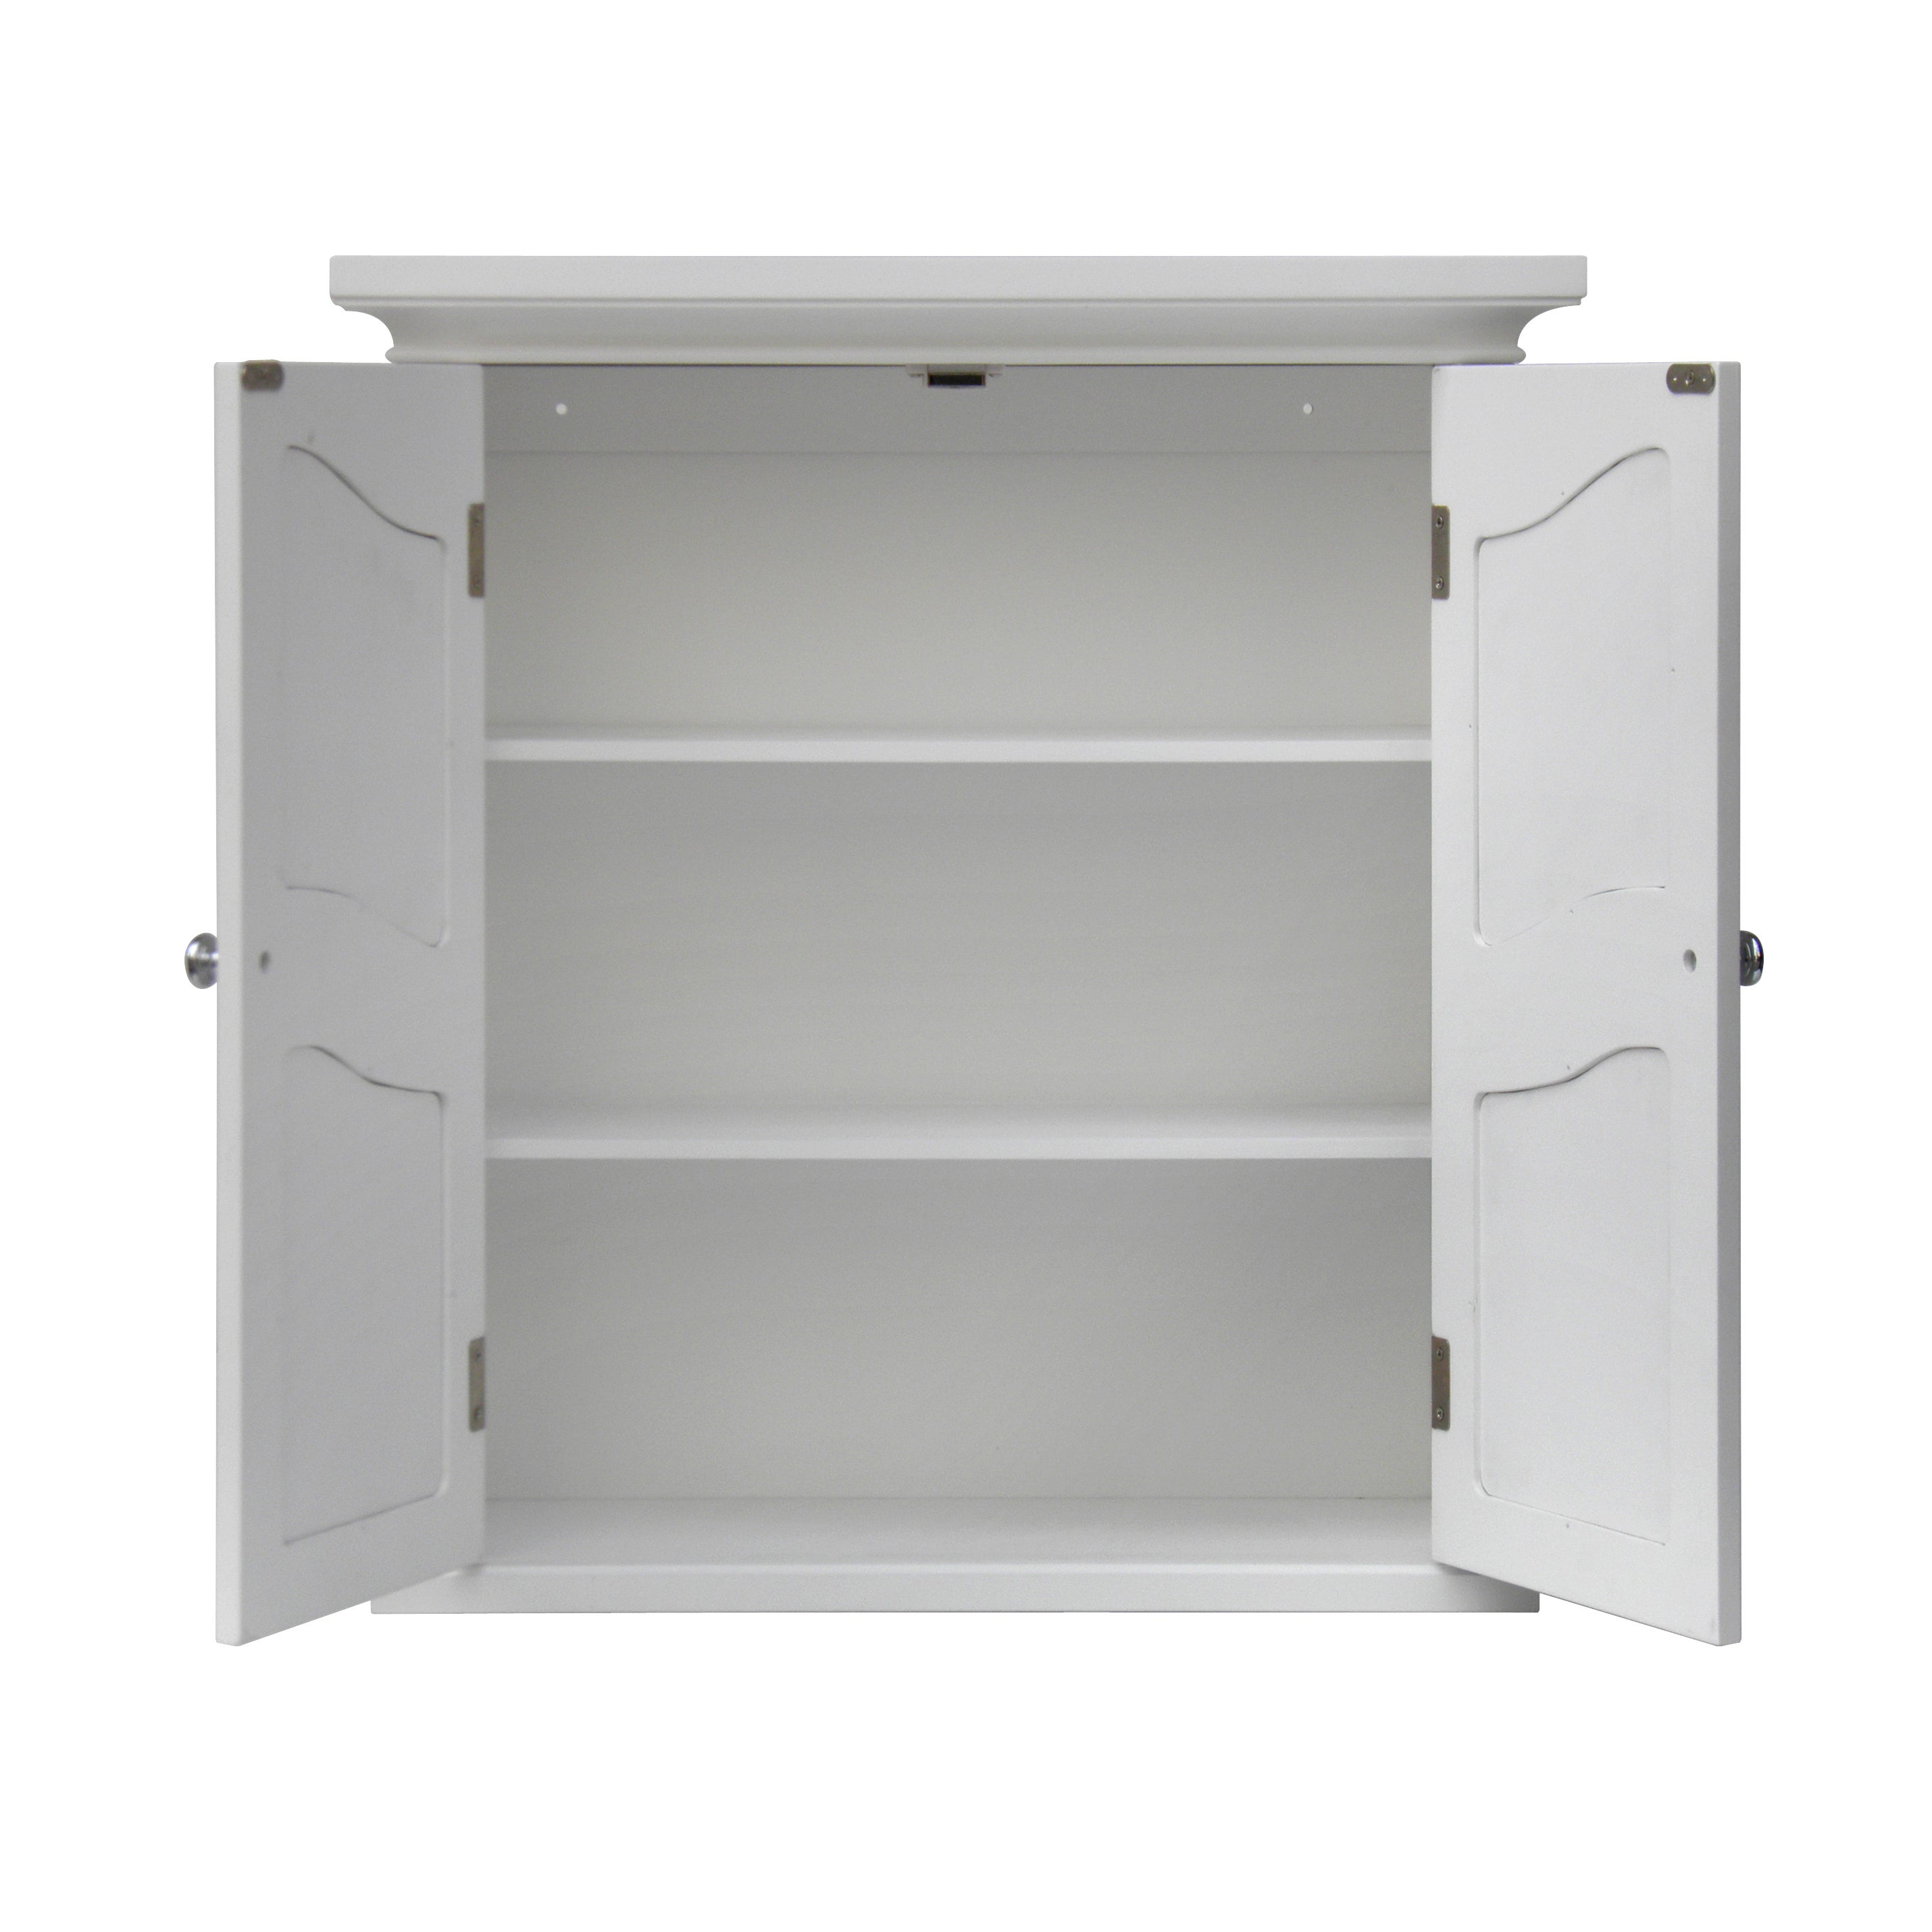 Shop Yvette White 2 Door Wall Cabinet By Elegant Home Fashions